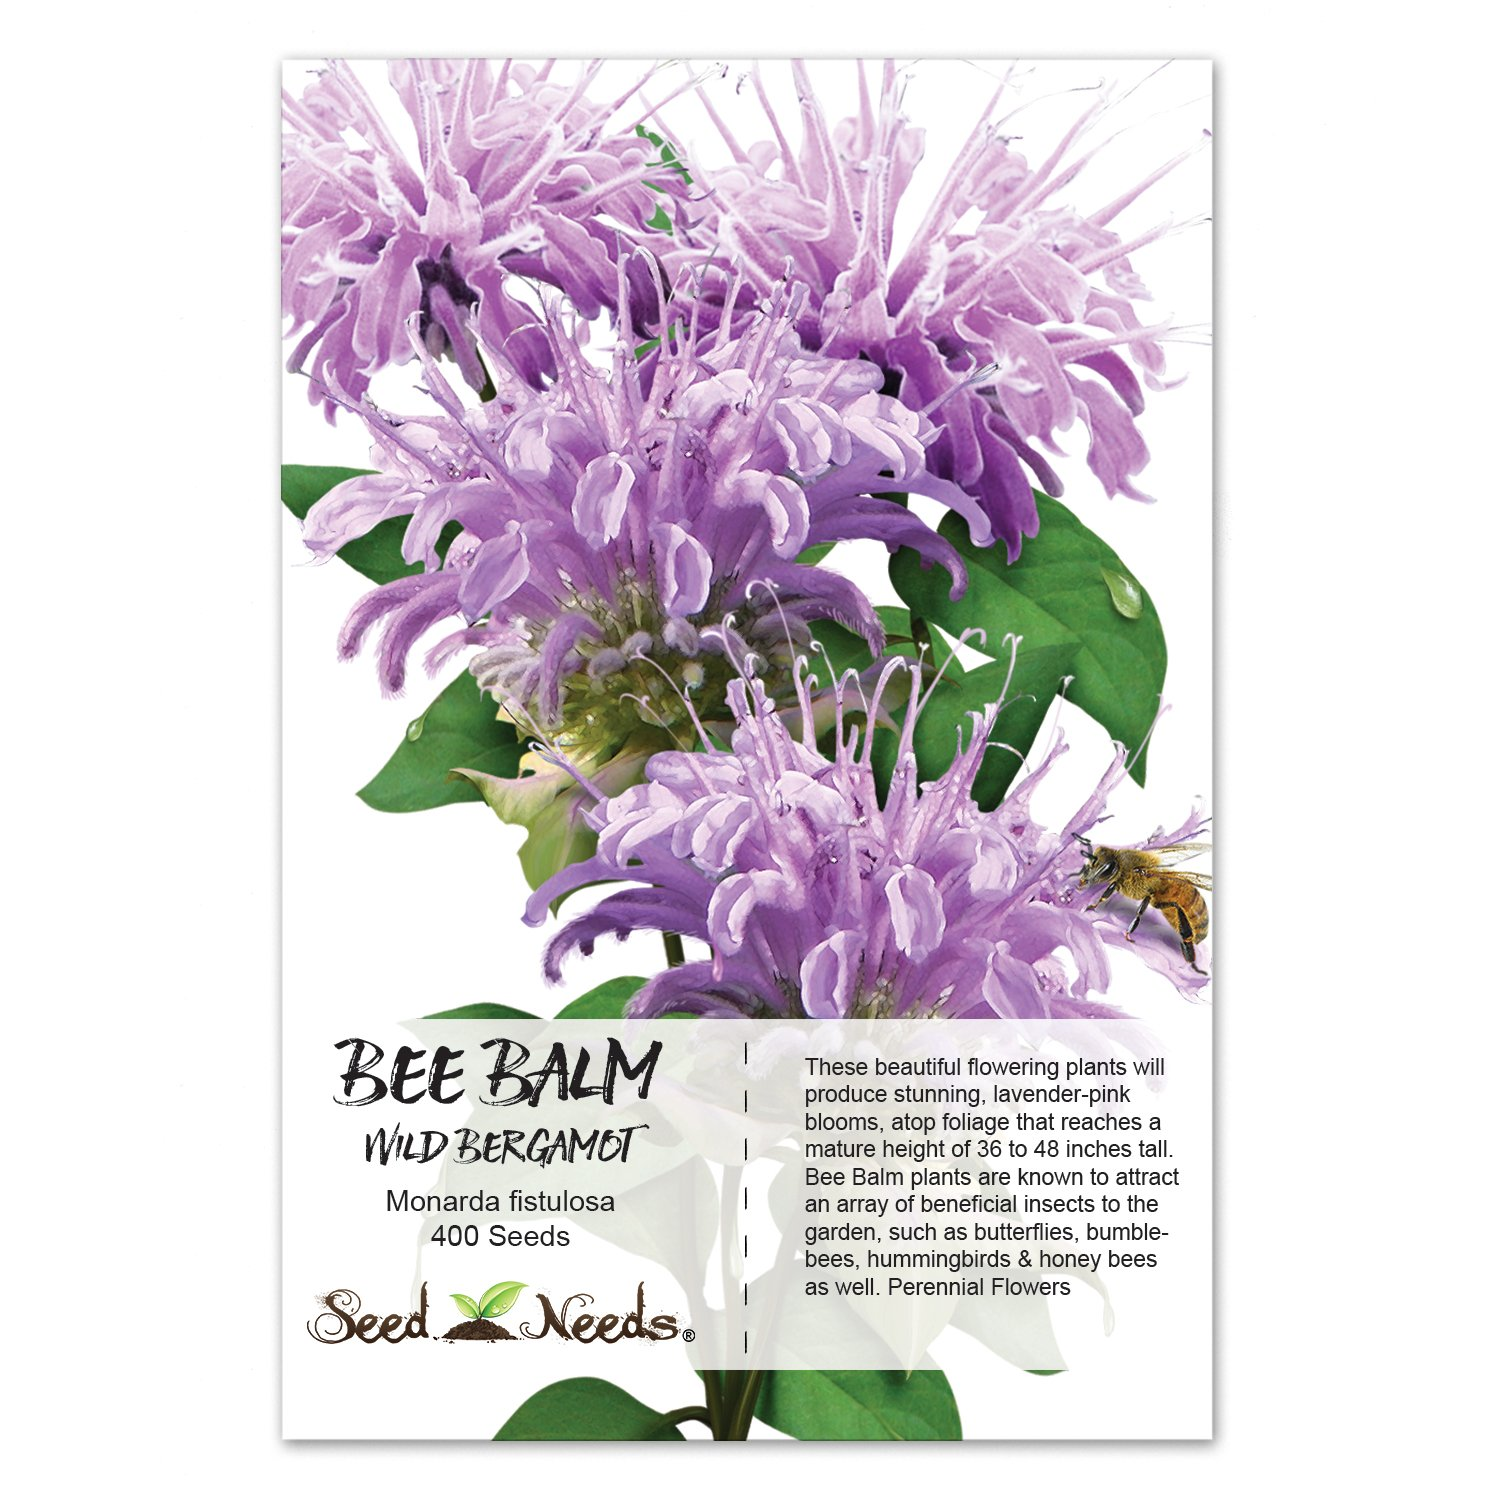 Amazoncom Package Of 400 Seeds, Wild Bergamot Bee Balm (Monarda